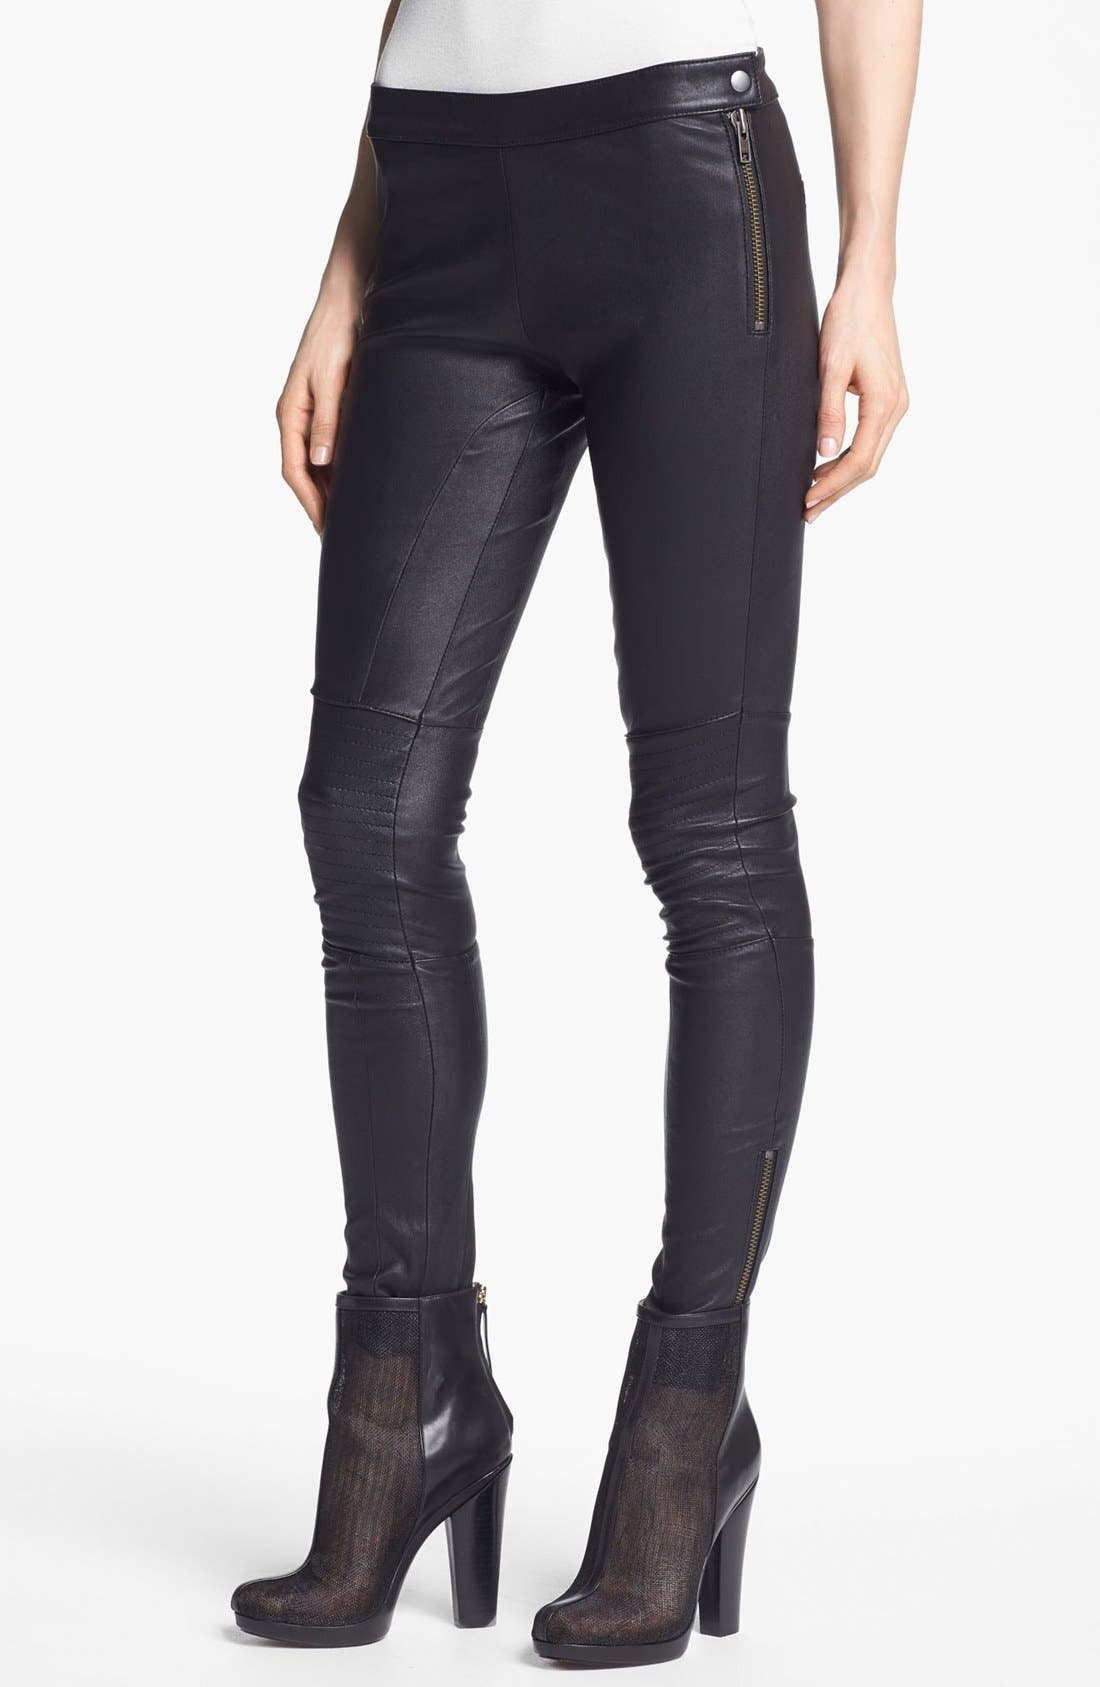 Alternate Image 1 Selected - Rachel Zoe 'Maxine' Skinny Stretch Leather Pants